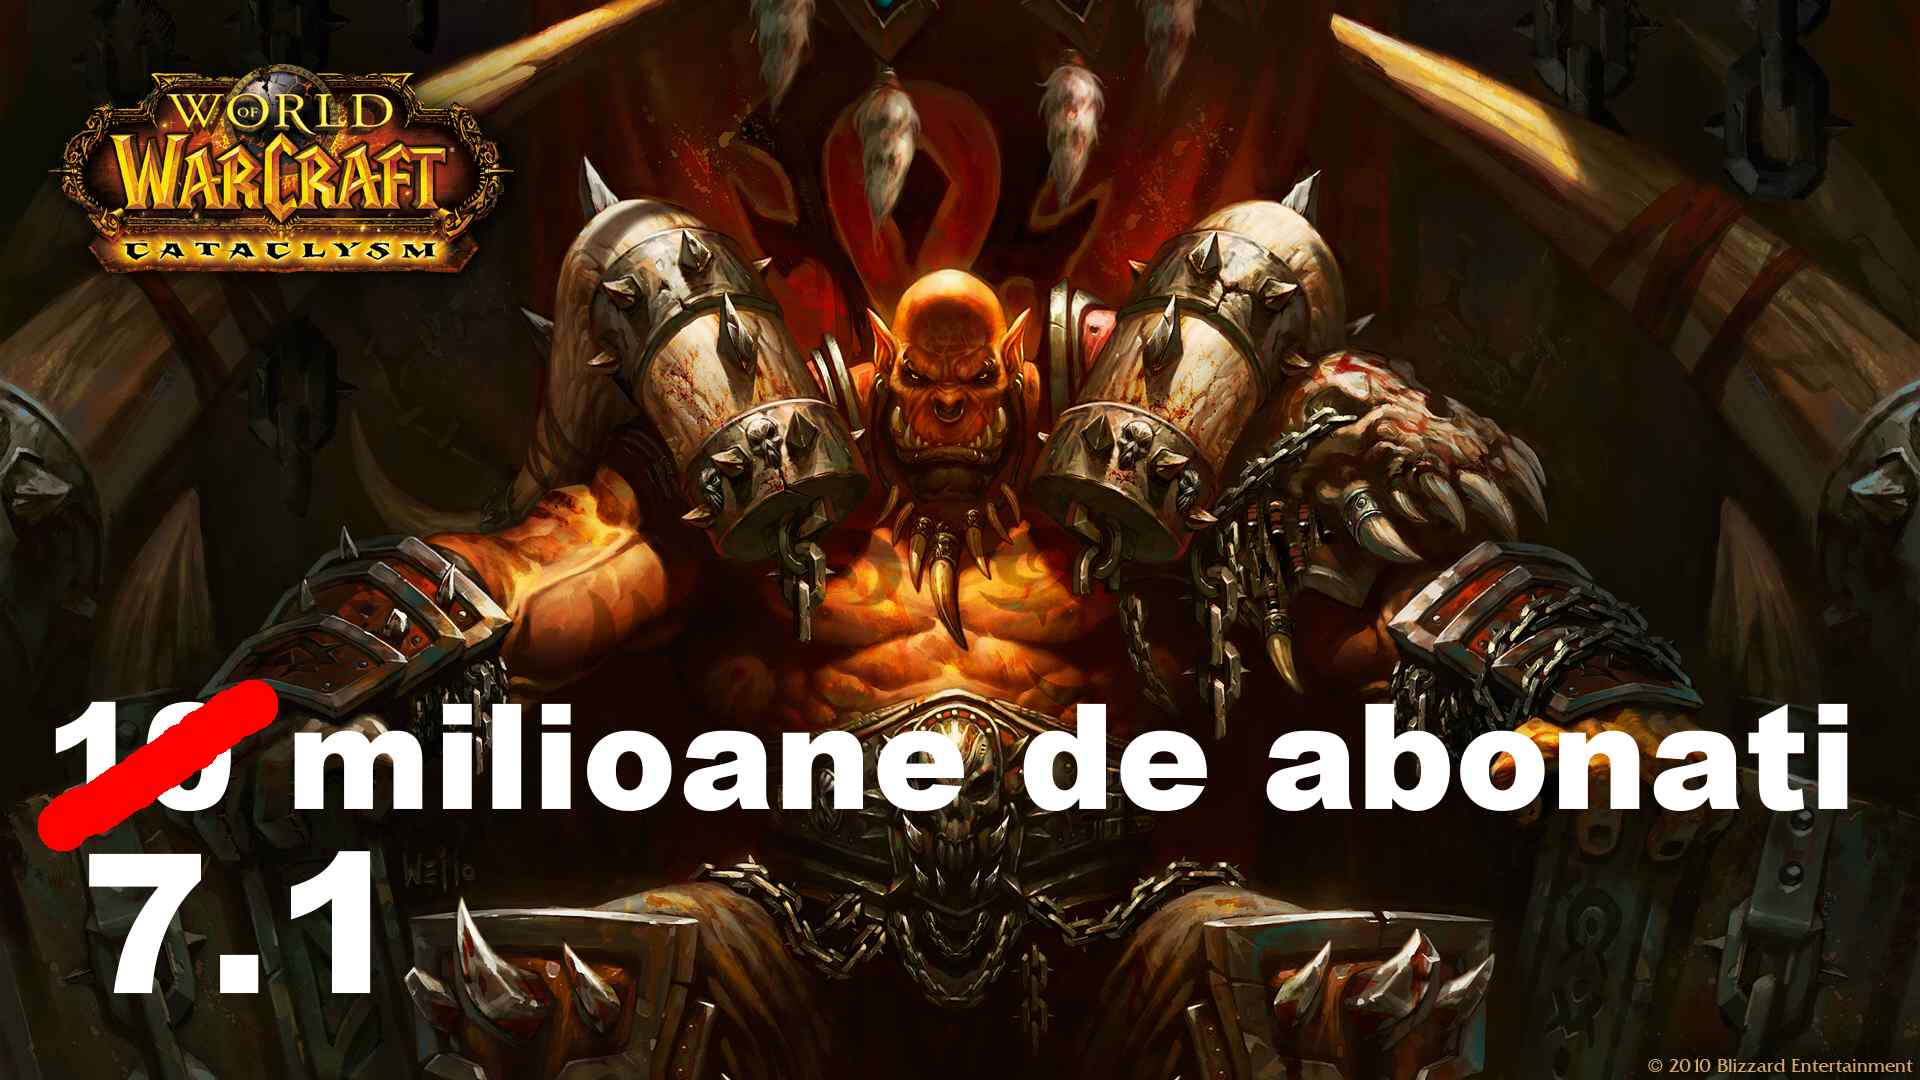 Photo of World of Warcraft a pierdut 3 milioane de abonati in cateva luni!